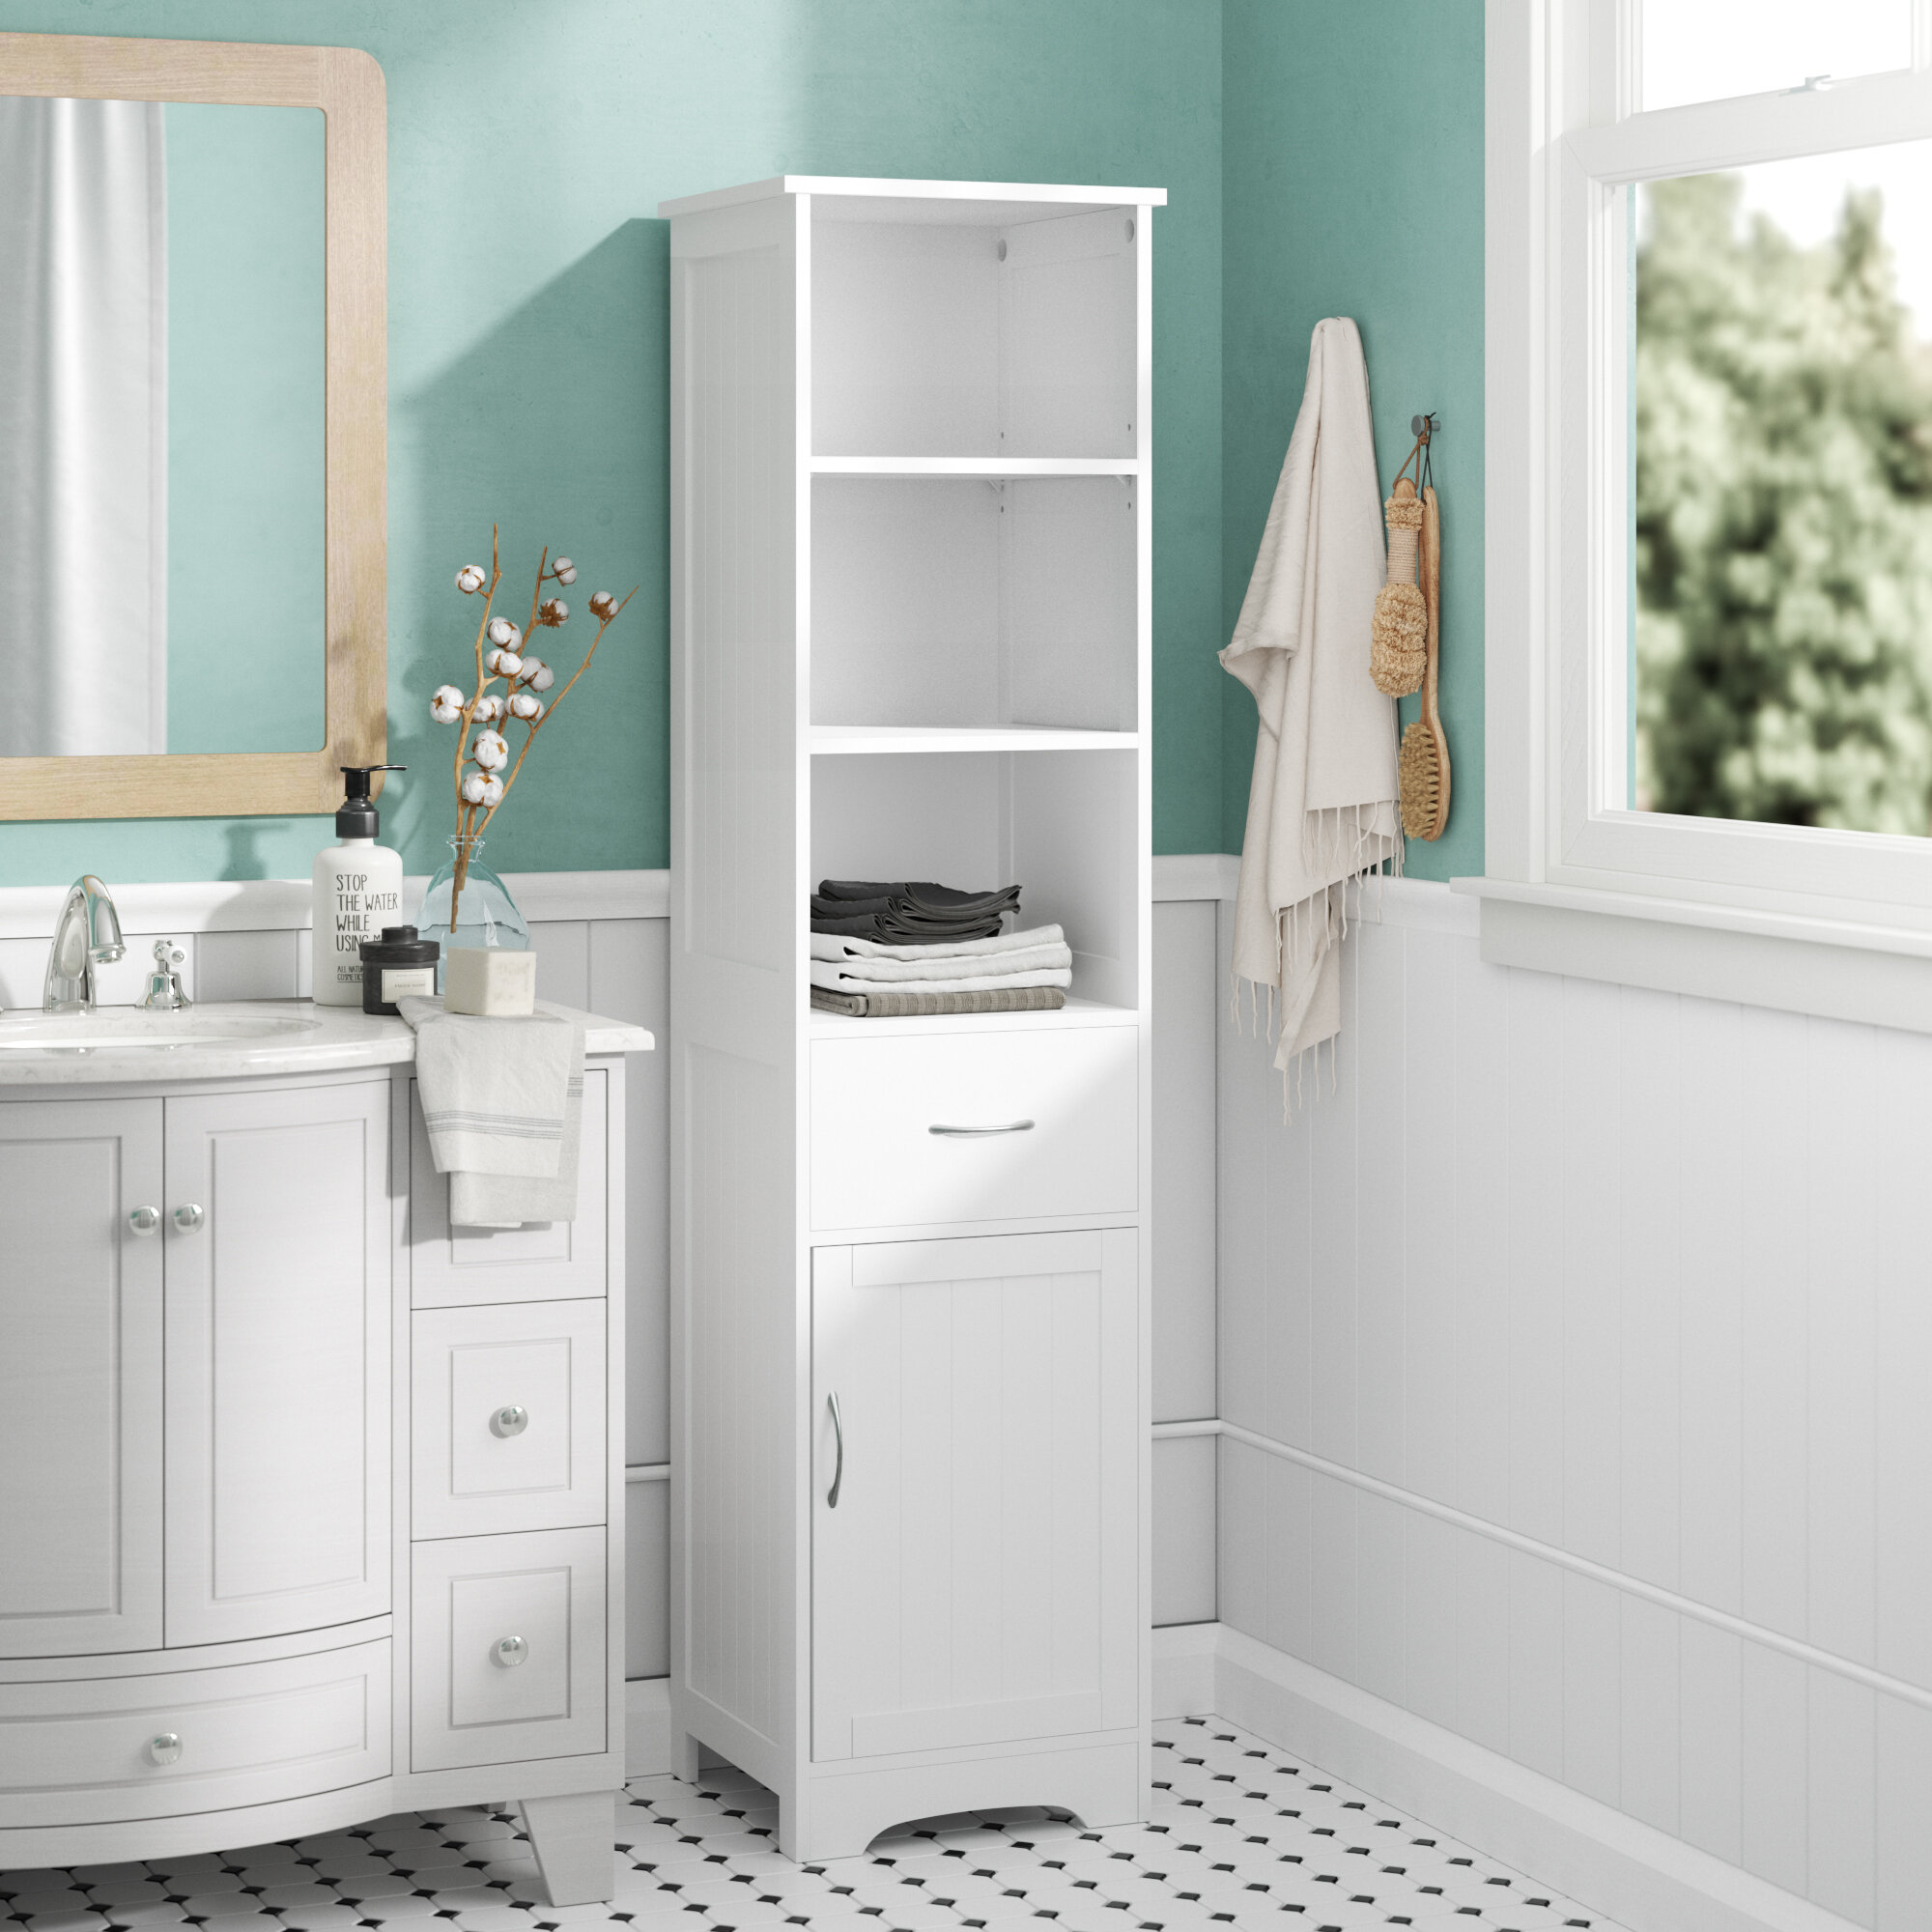 Symple Stuff 40 X 160cm Free Standing Tall Bathroom Cabinet Reviews Wayfair Co Uk